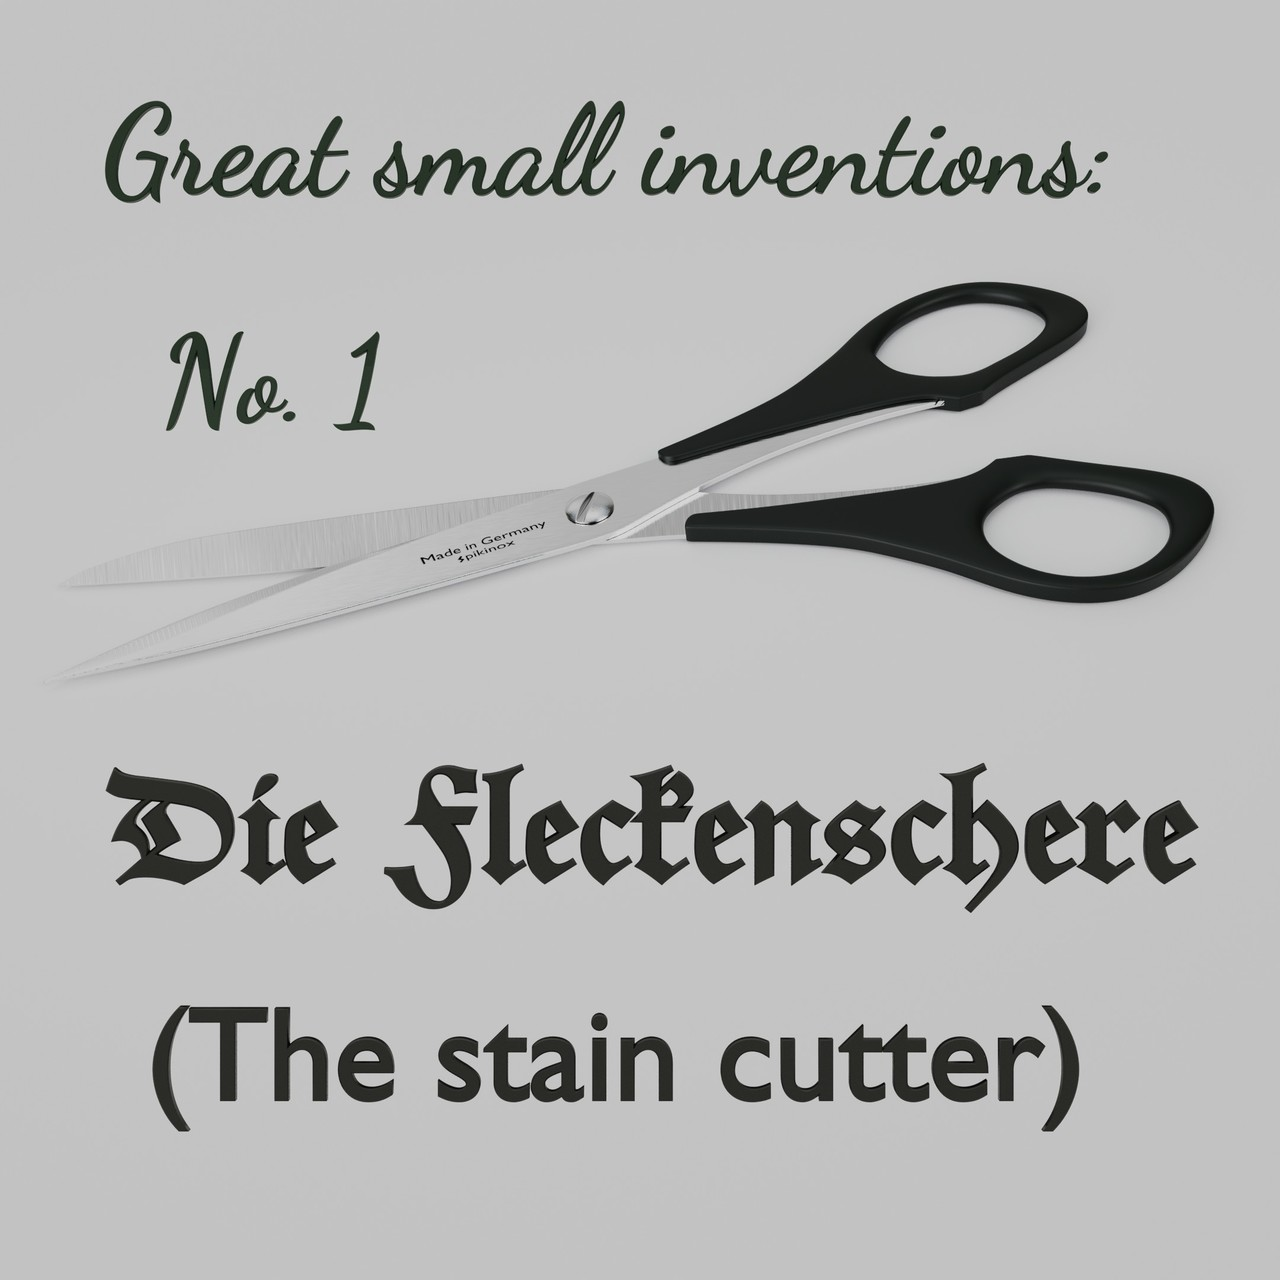 Great small inventions 1